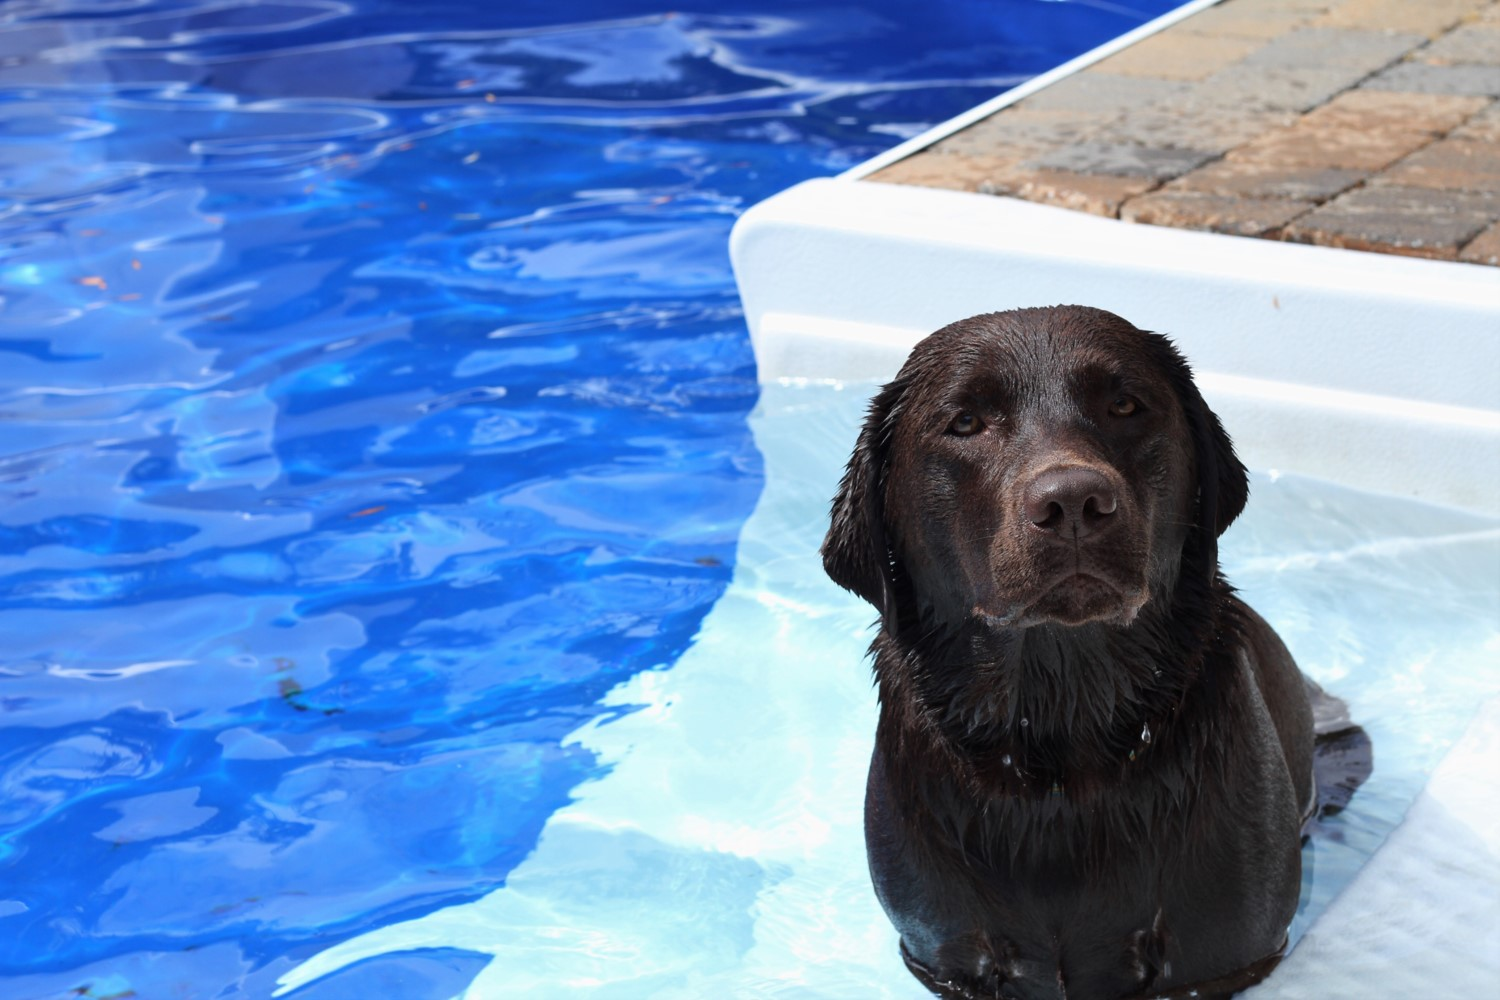 Pet Friendly - PoolHide is world-renowned for being durable enough to withstand pets.